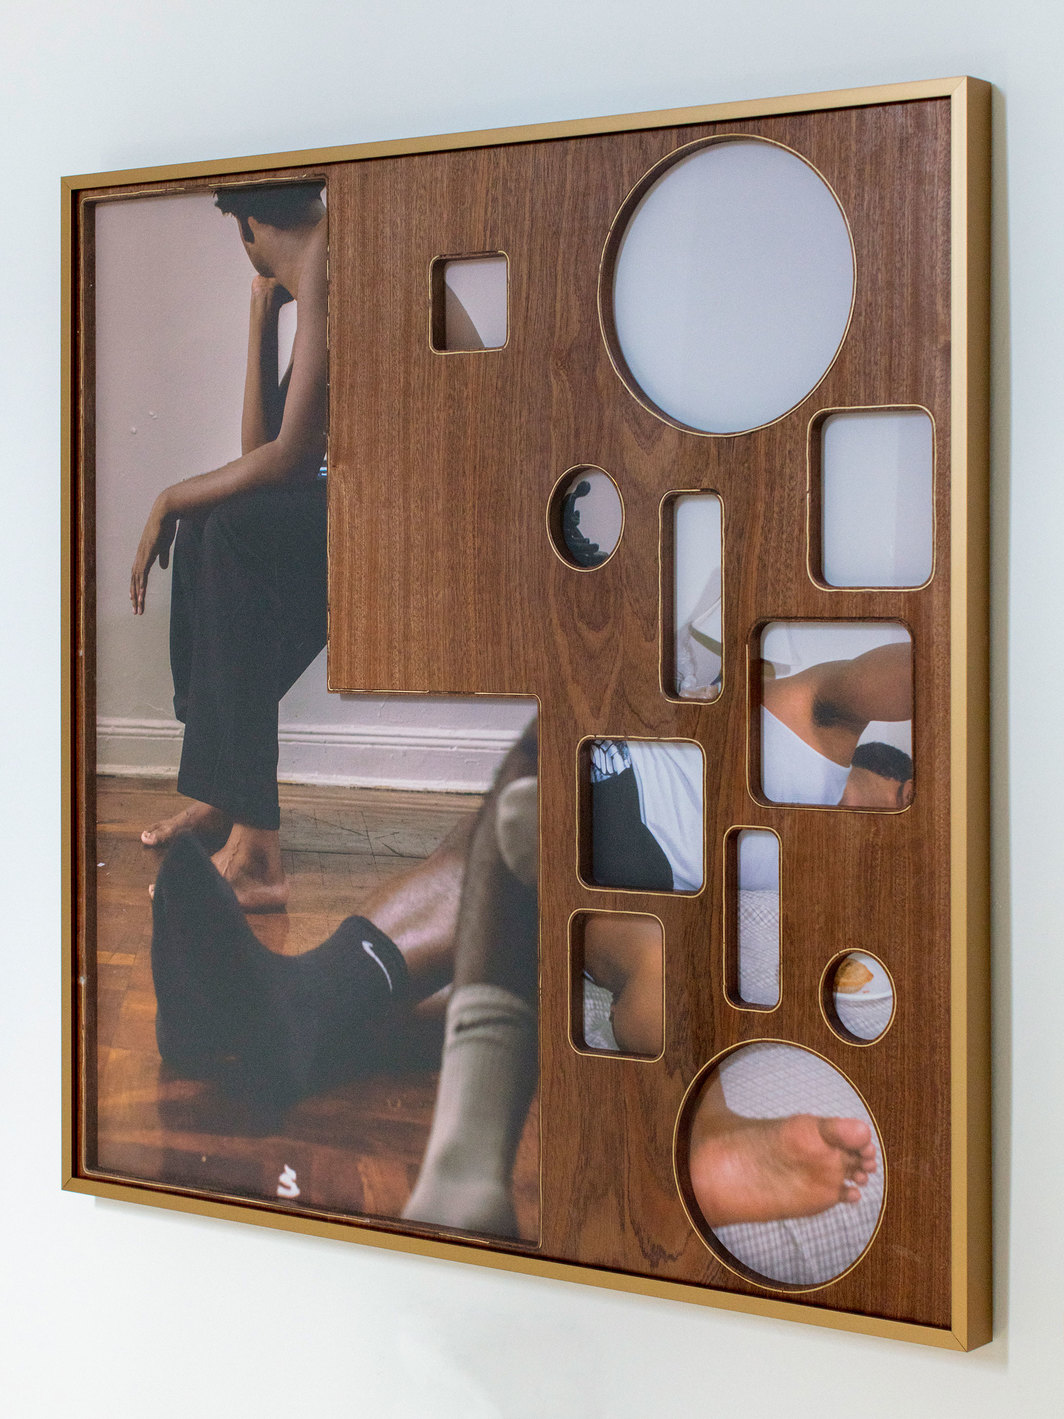 "Elliott Jerome Brown Jr., He gave and he gave / but he wouldn't have given at all if I didn't let him in / if I didn't cover my body in soap three times / swish oil between my teeth 47 minutes ahead of the time / that I expected him. / (Wounded), 2018, archival inkjet prints on aluminum, wood, and brass wire, 31 x 31""."